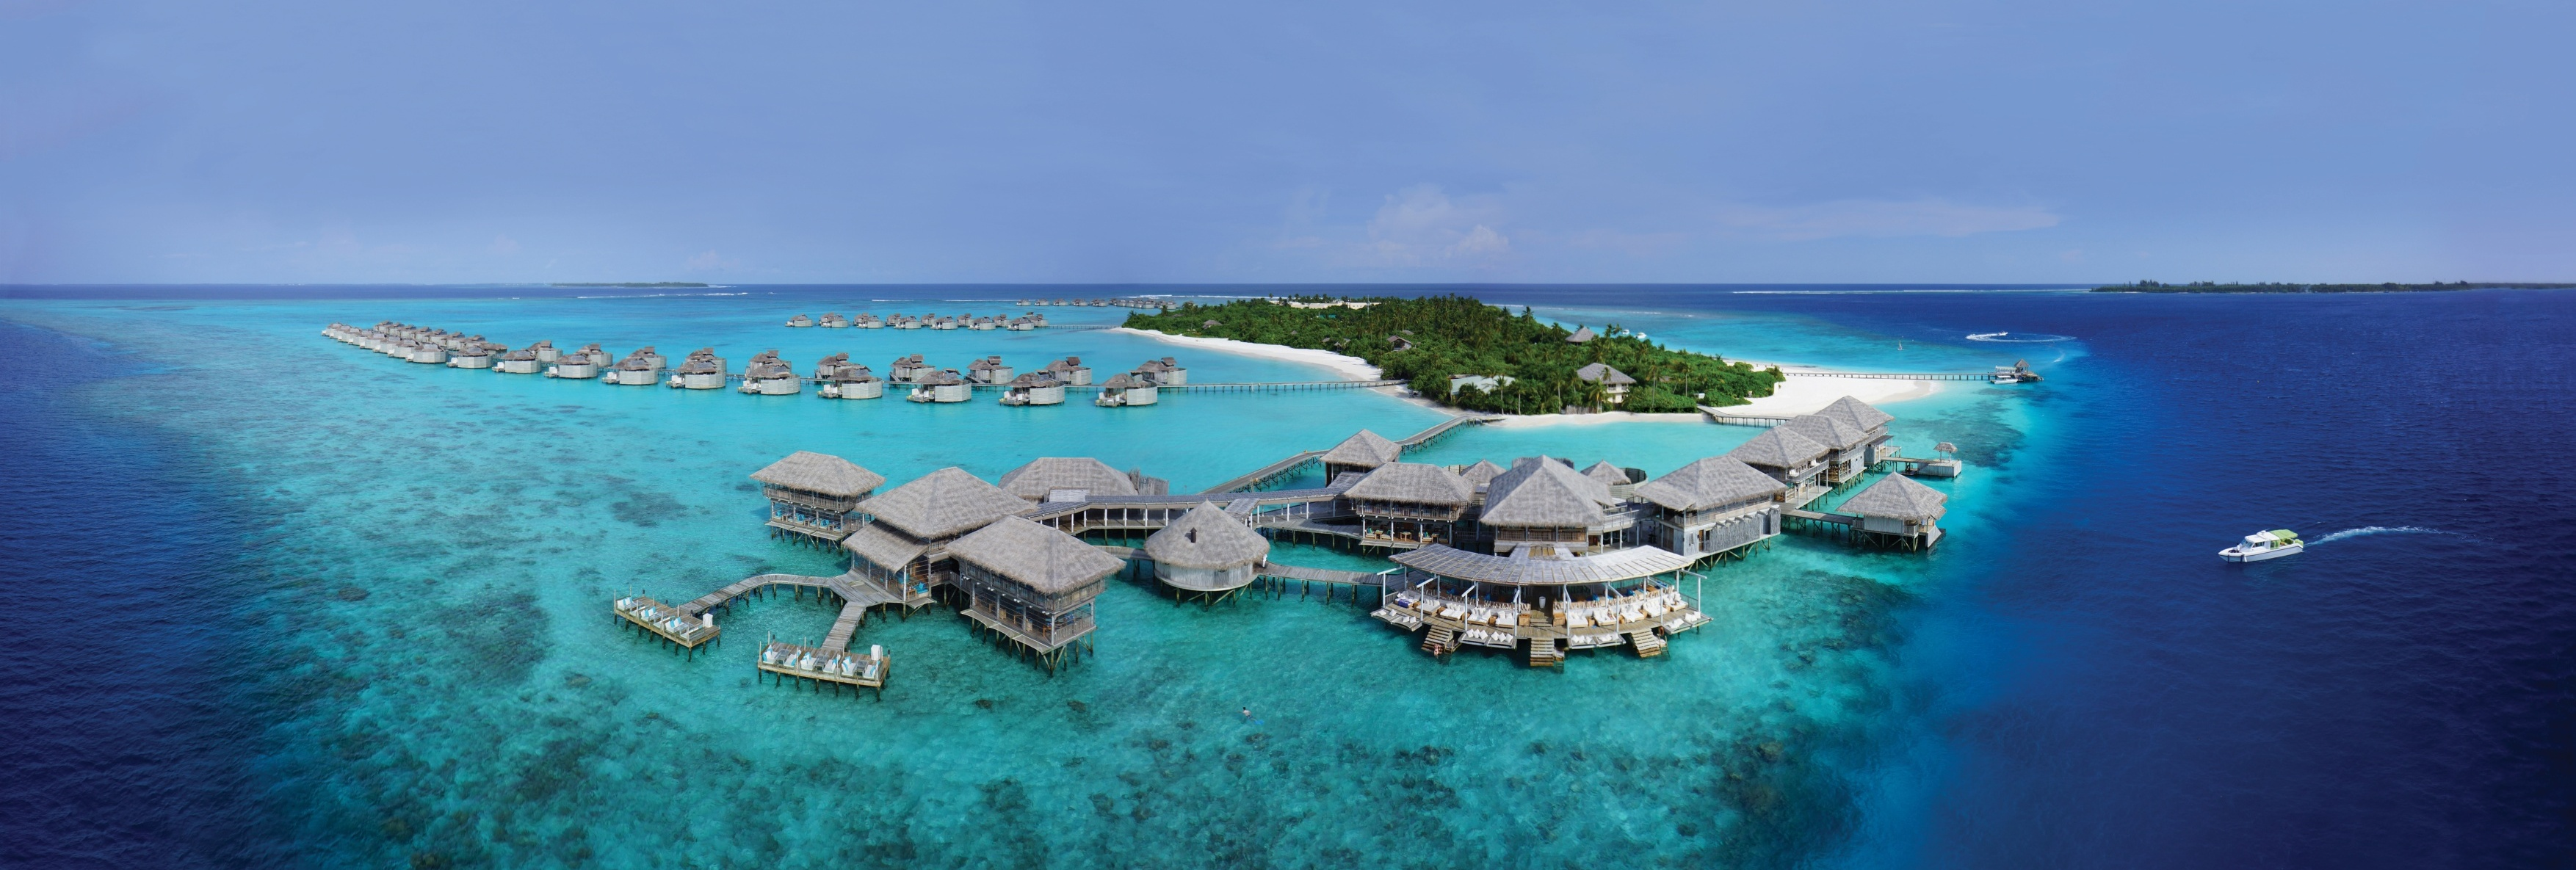 Six_Senses_Laamu_panorama